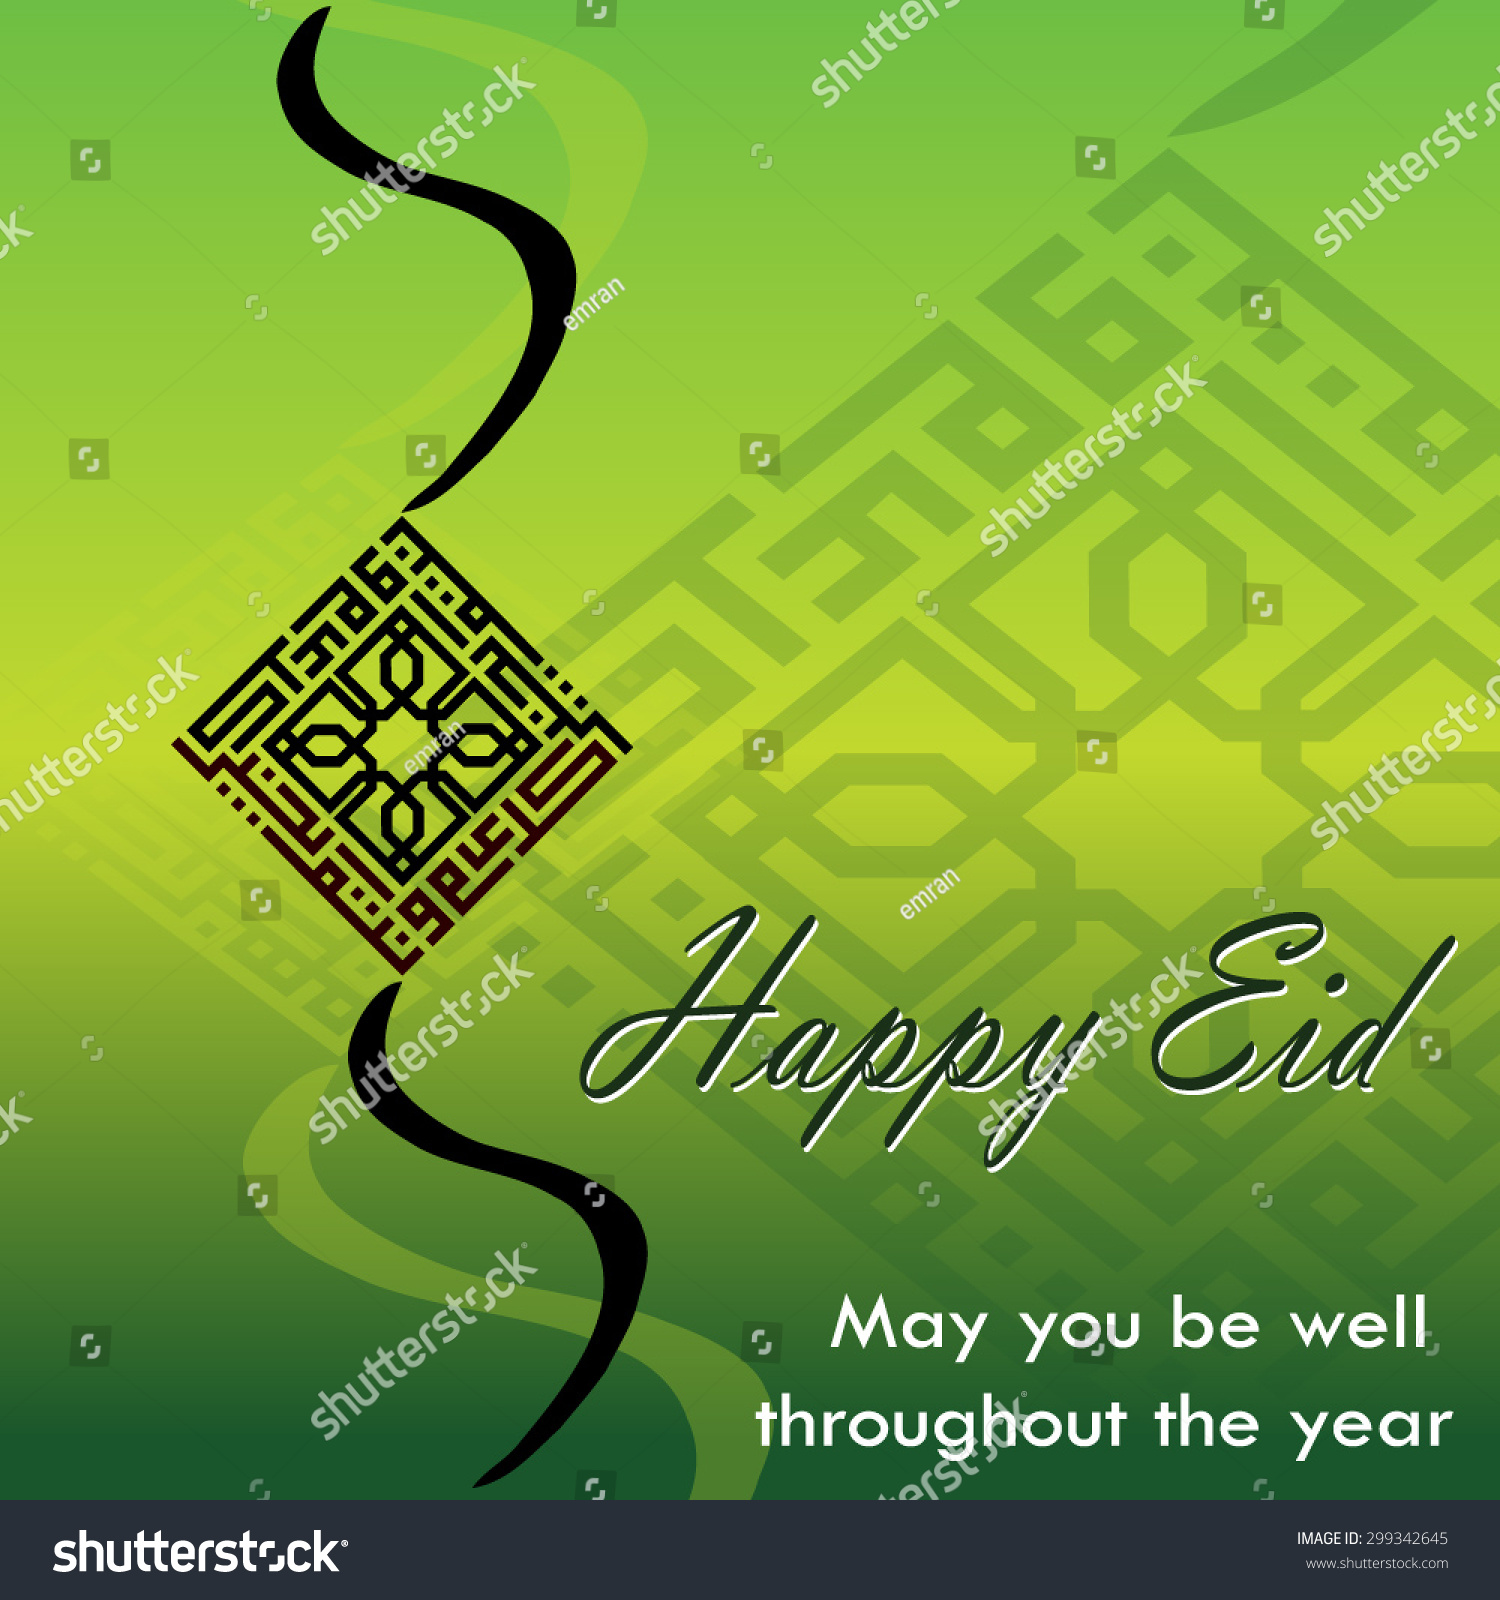 Eid greeting vector kufi square arabic stock vector 299342645 eid greeting vector in kufi square arabic calligraphy style translationmay you be well kristyandbryce Choice Image